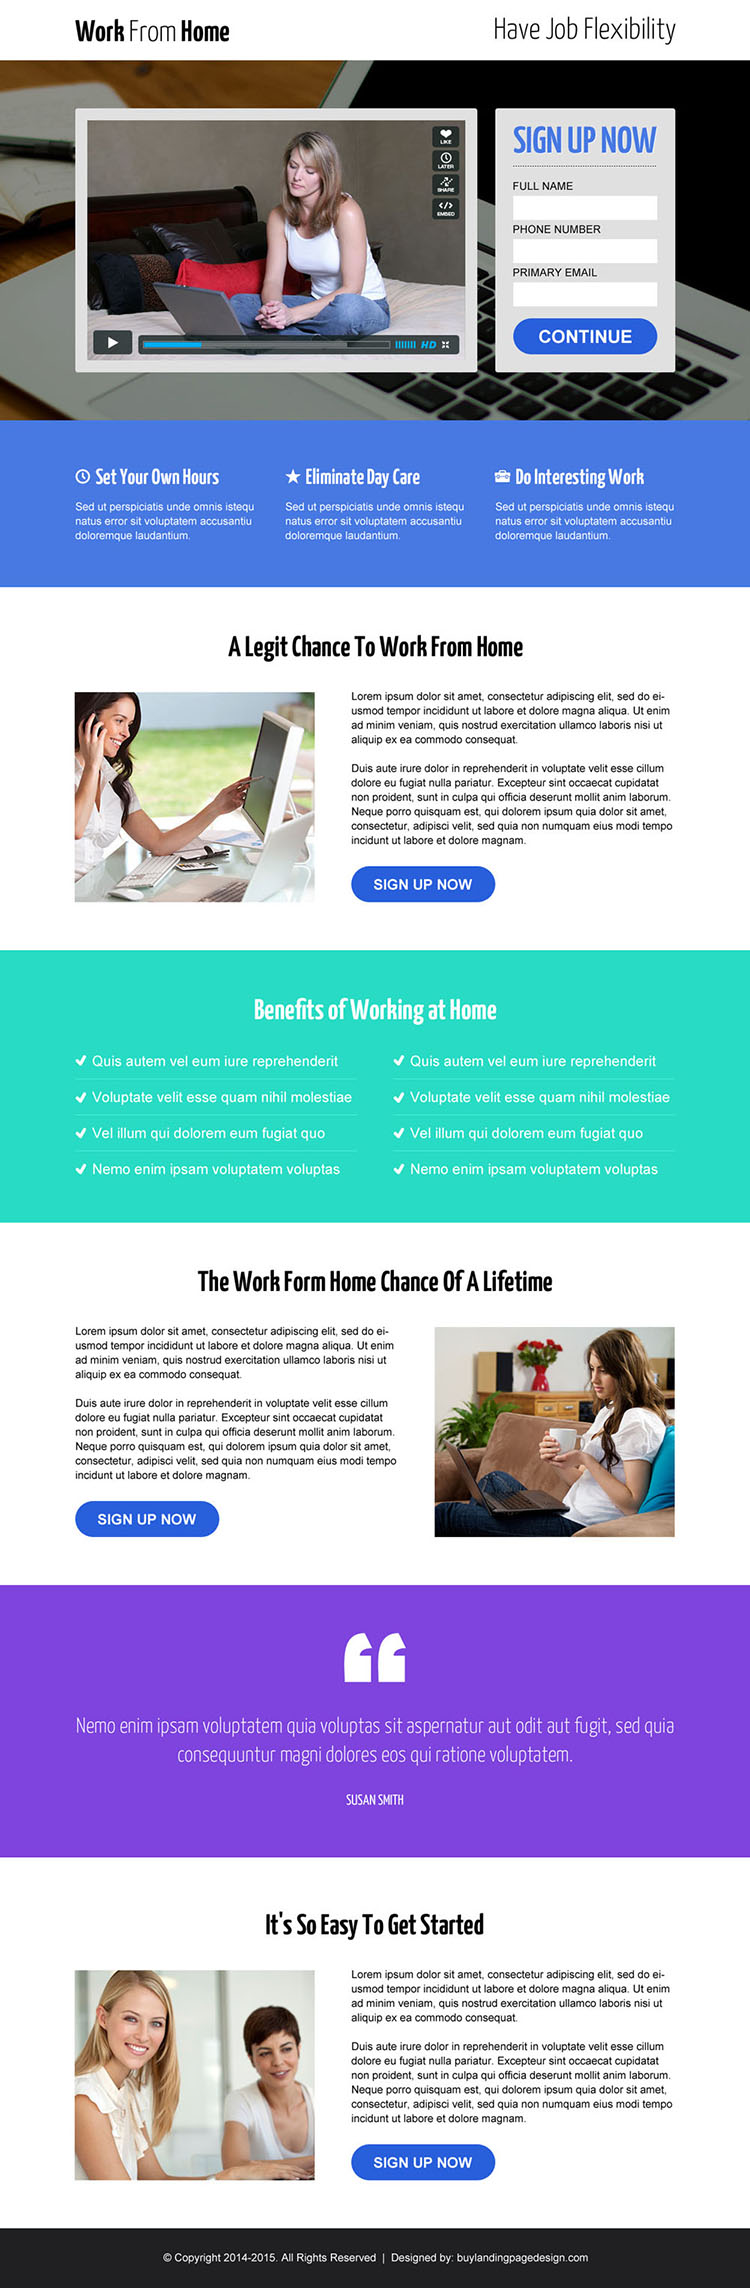 work from home video lead capture responsive landing page design template